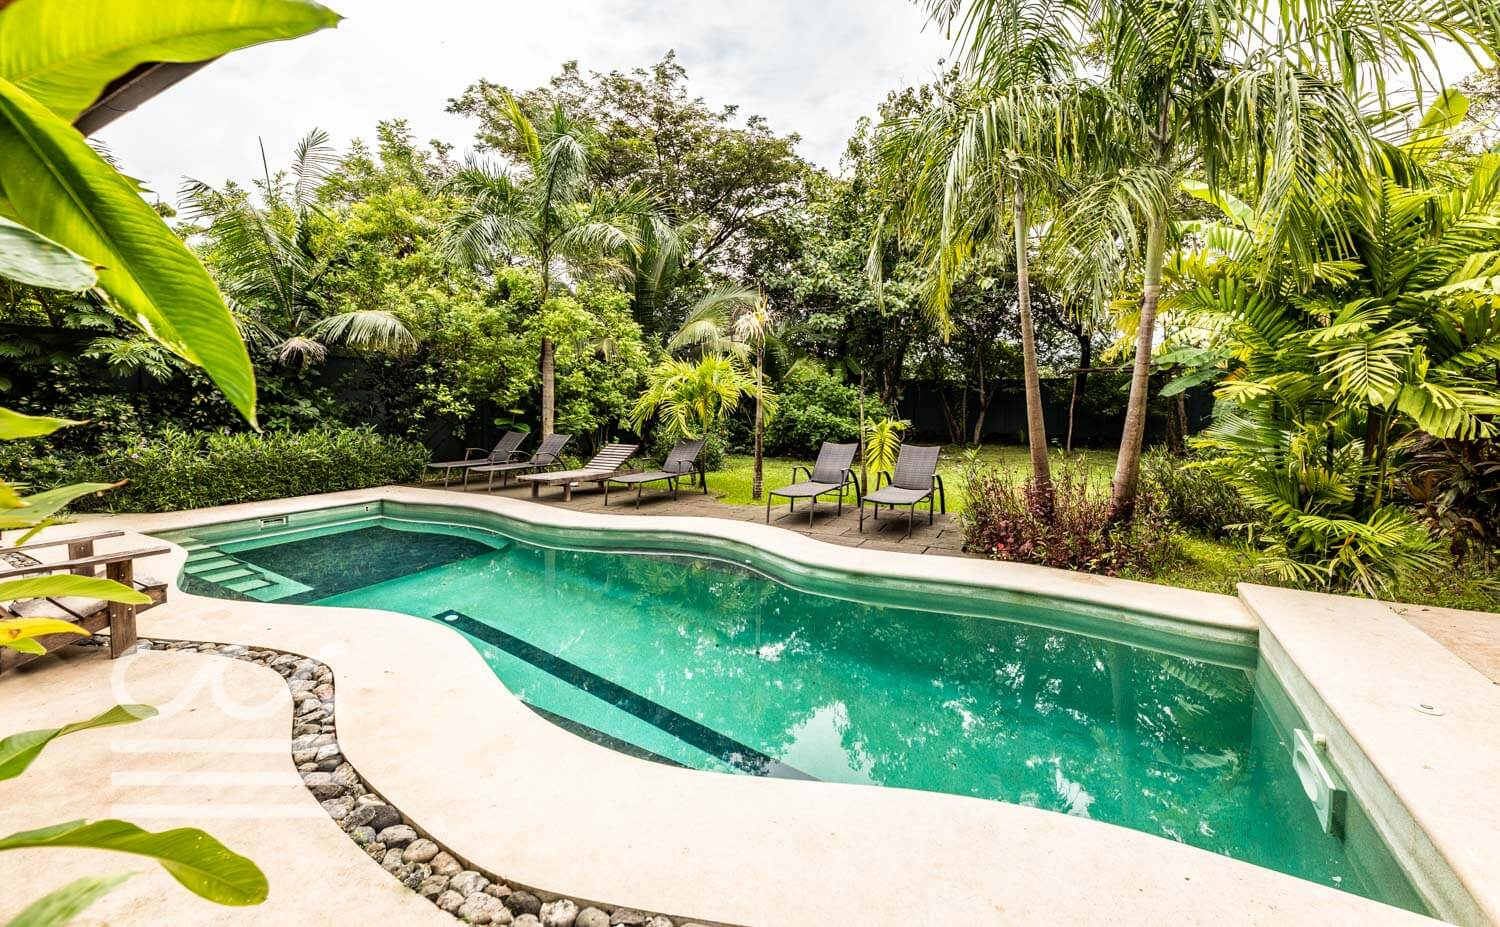 Endless-Summer-Wanderlust-Realty-Real-Estate-Rentals-Nosara-Costa-Rica-2.jpg